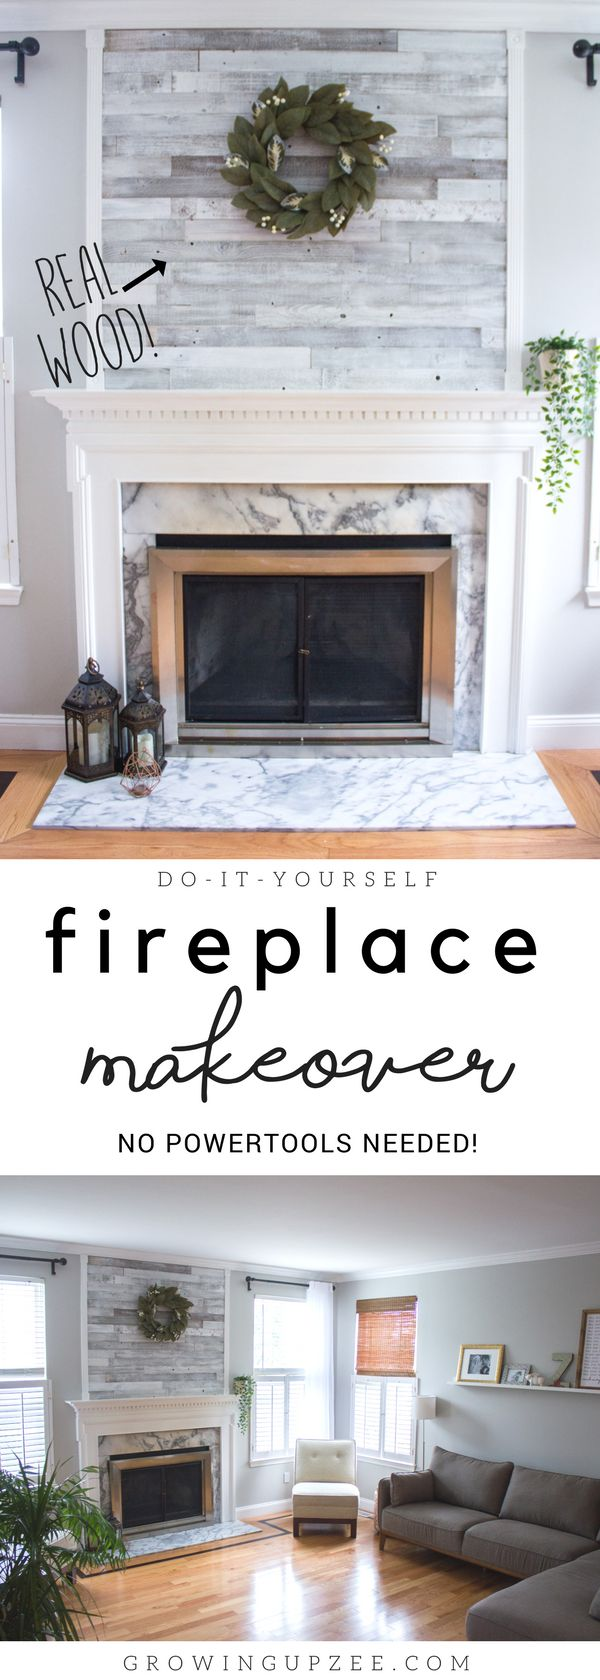 love the simplicity of how this fireplace is decorated